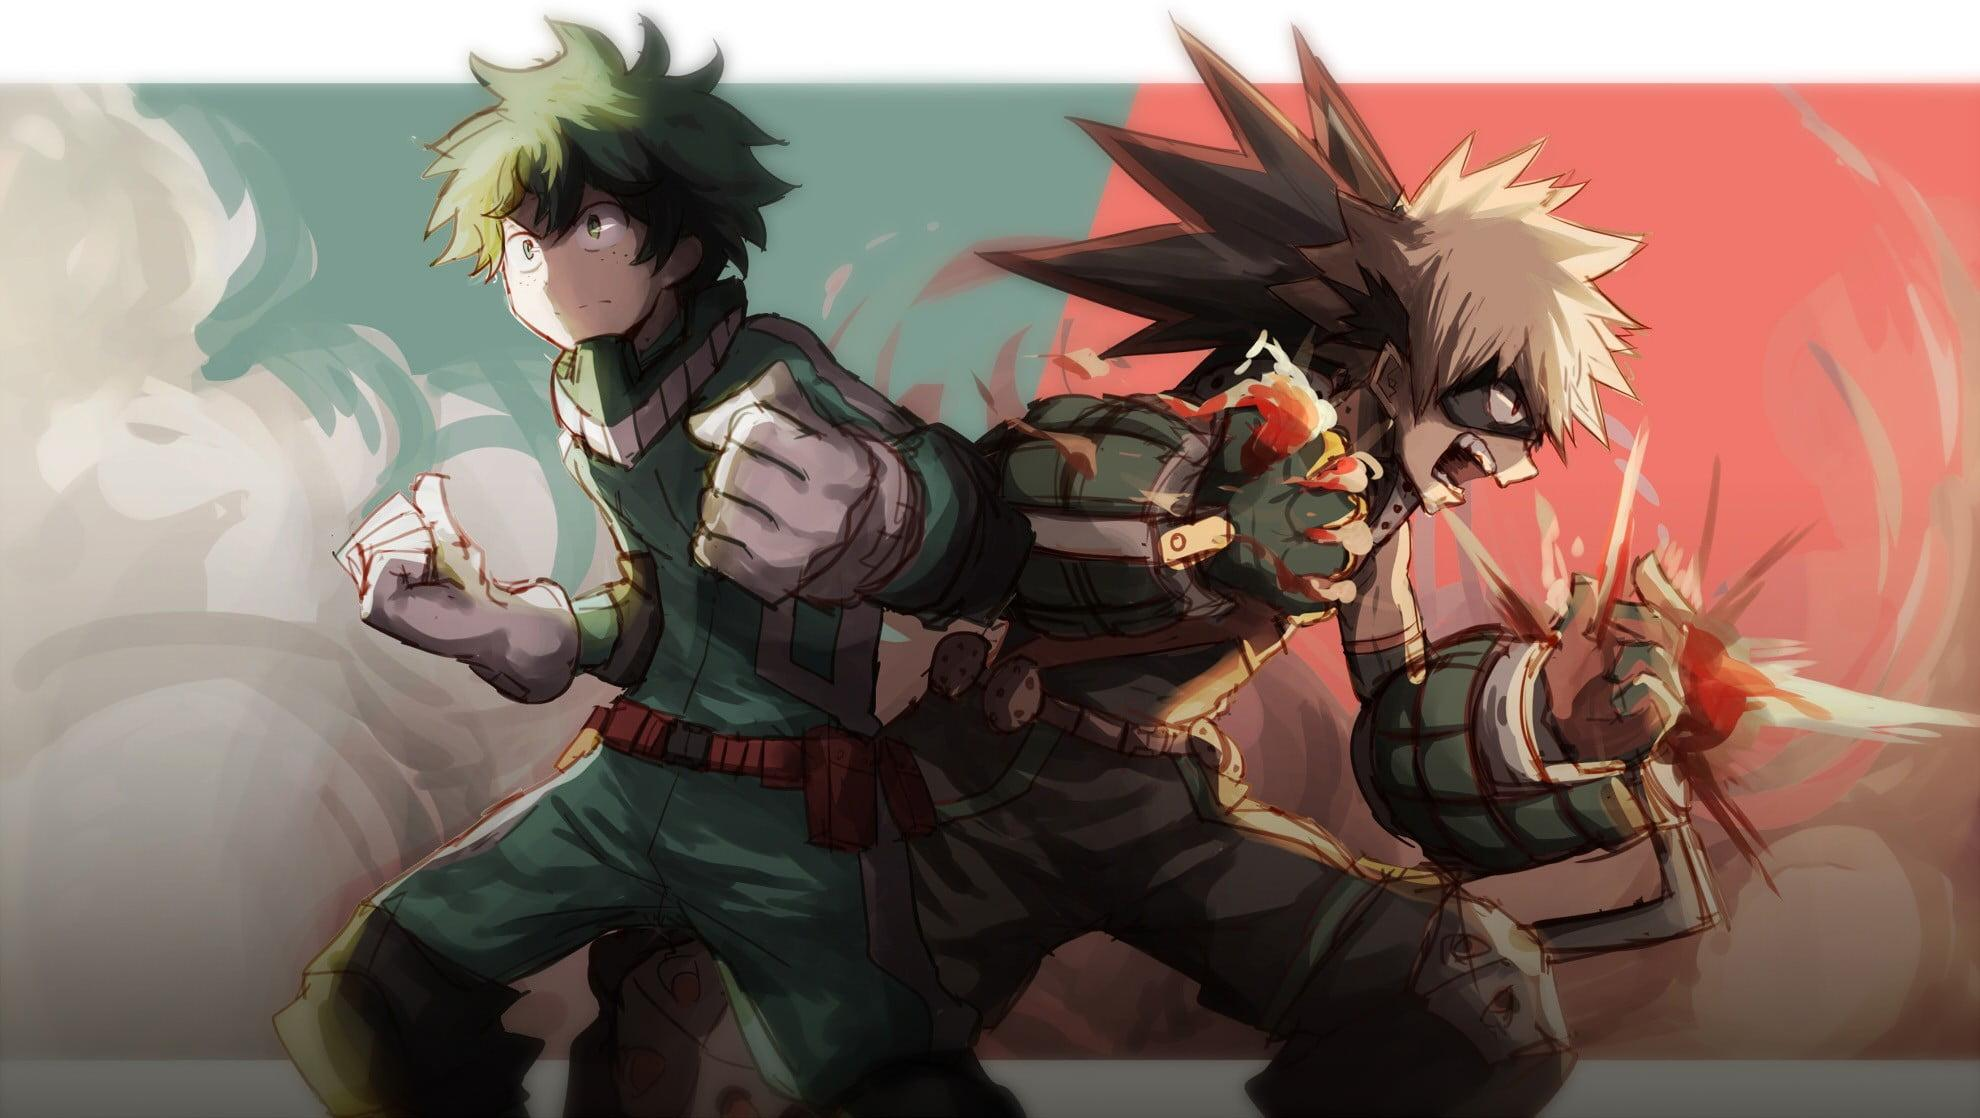 Bakugo X Deku Wallpapers Wallpaper Cave